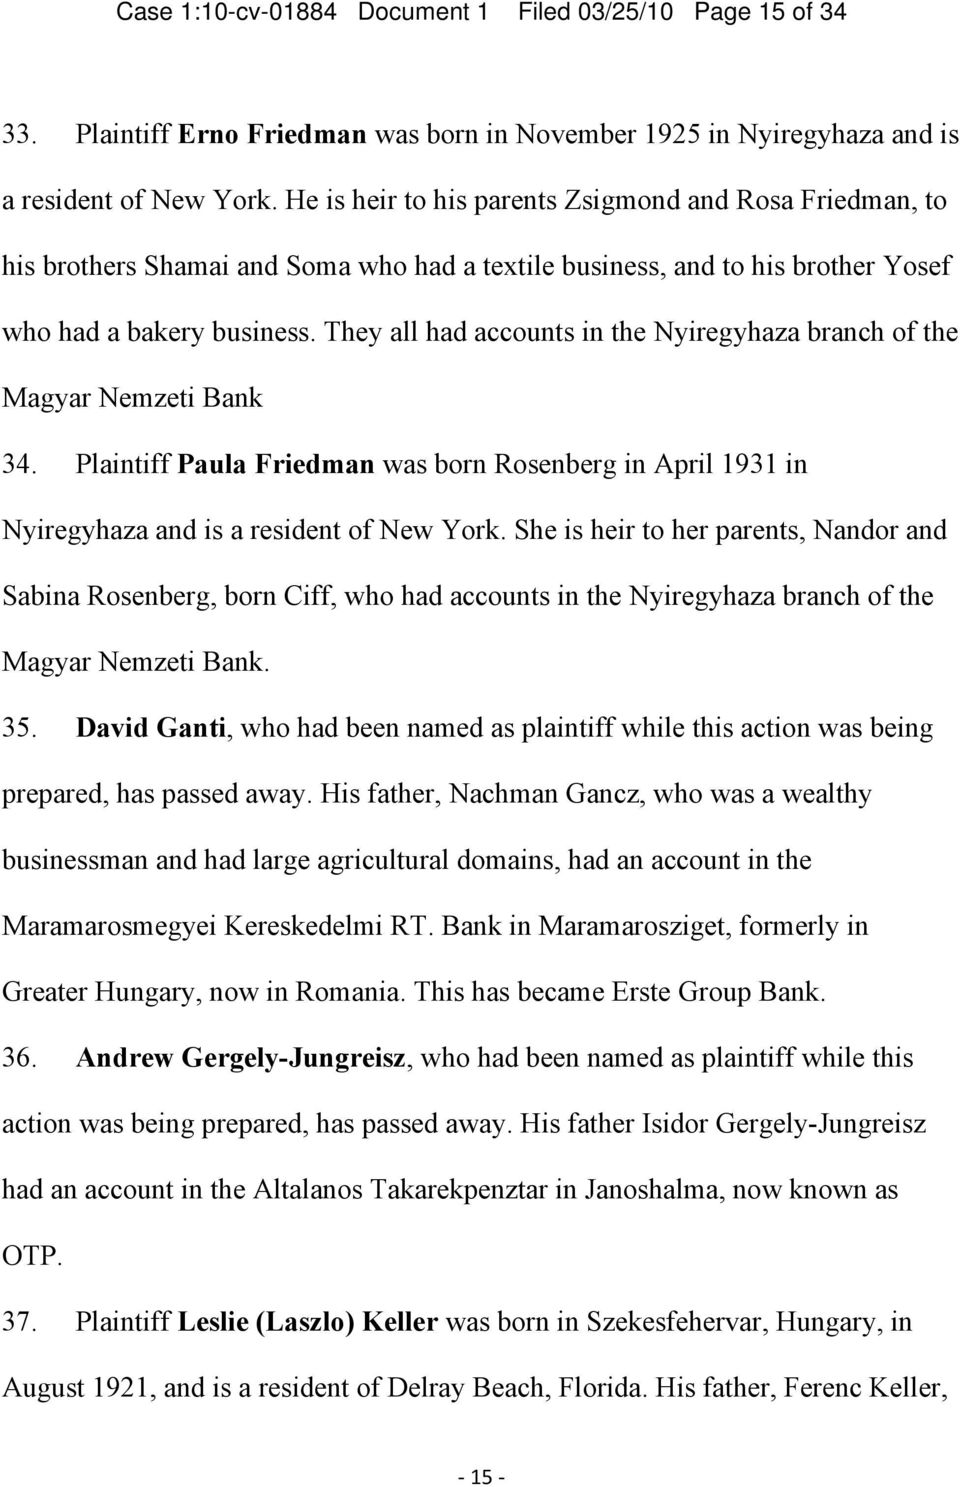 They all had accounts in the Nyiregyhaza branch of the Magyar Nemzeti Bank 34. Plaintiff Paula Friedman was born Rosenberg in April 1931 in Nyiregyhaza and is a resident of New York.